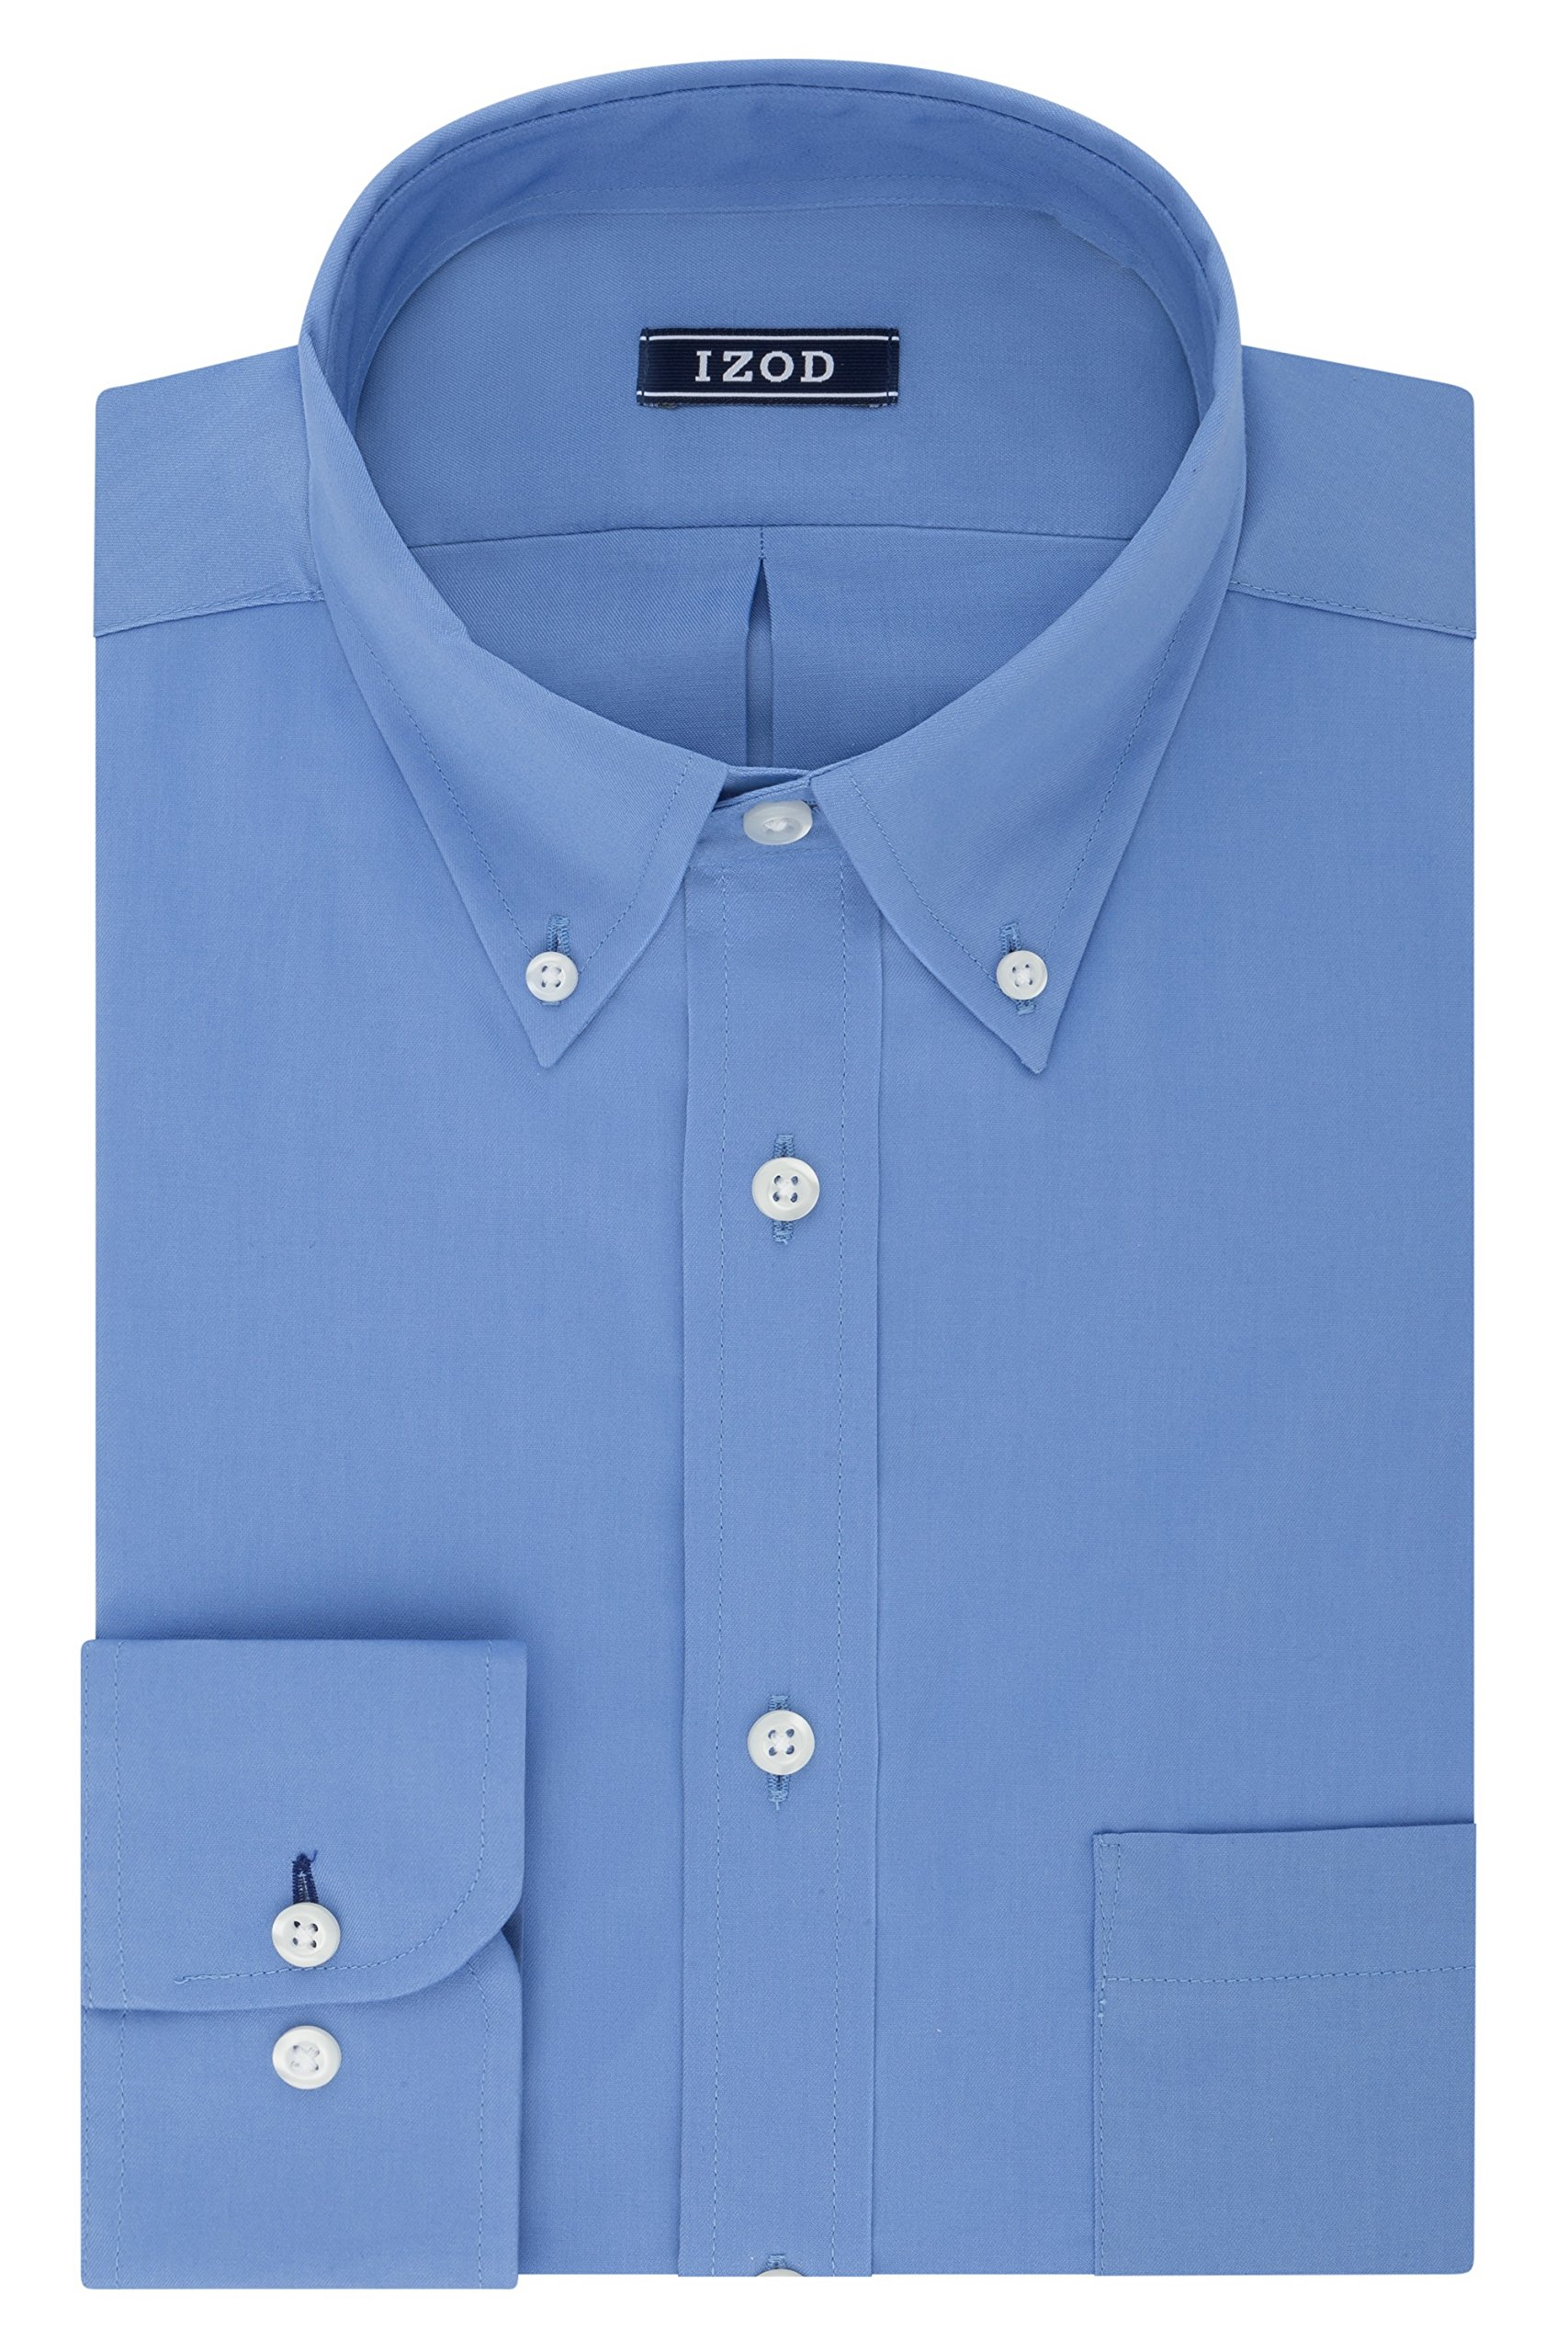 Izod Men's BIG FIT Dress Shirts Stretch Solid (Big and Tall)